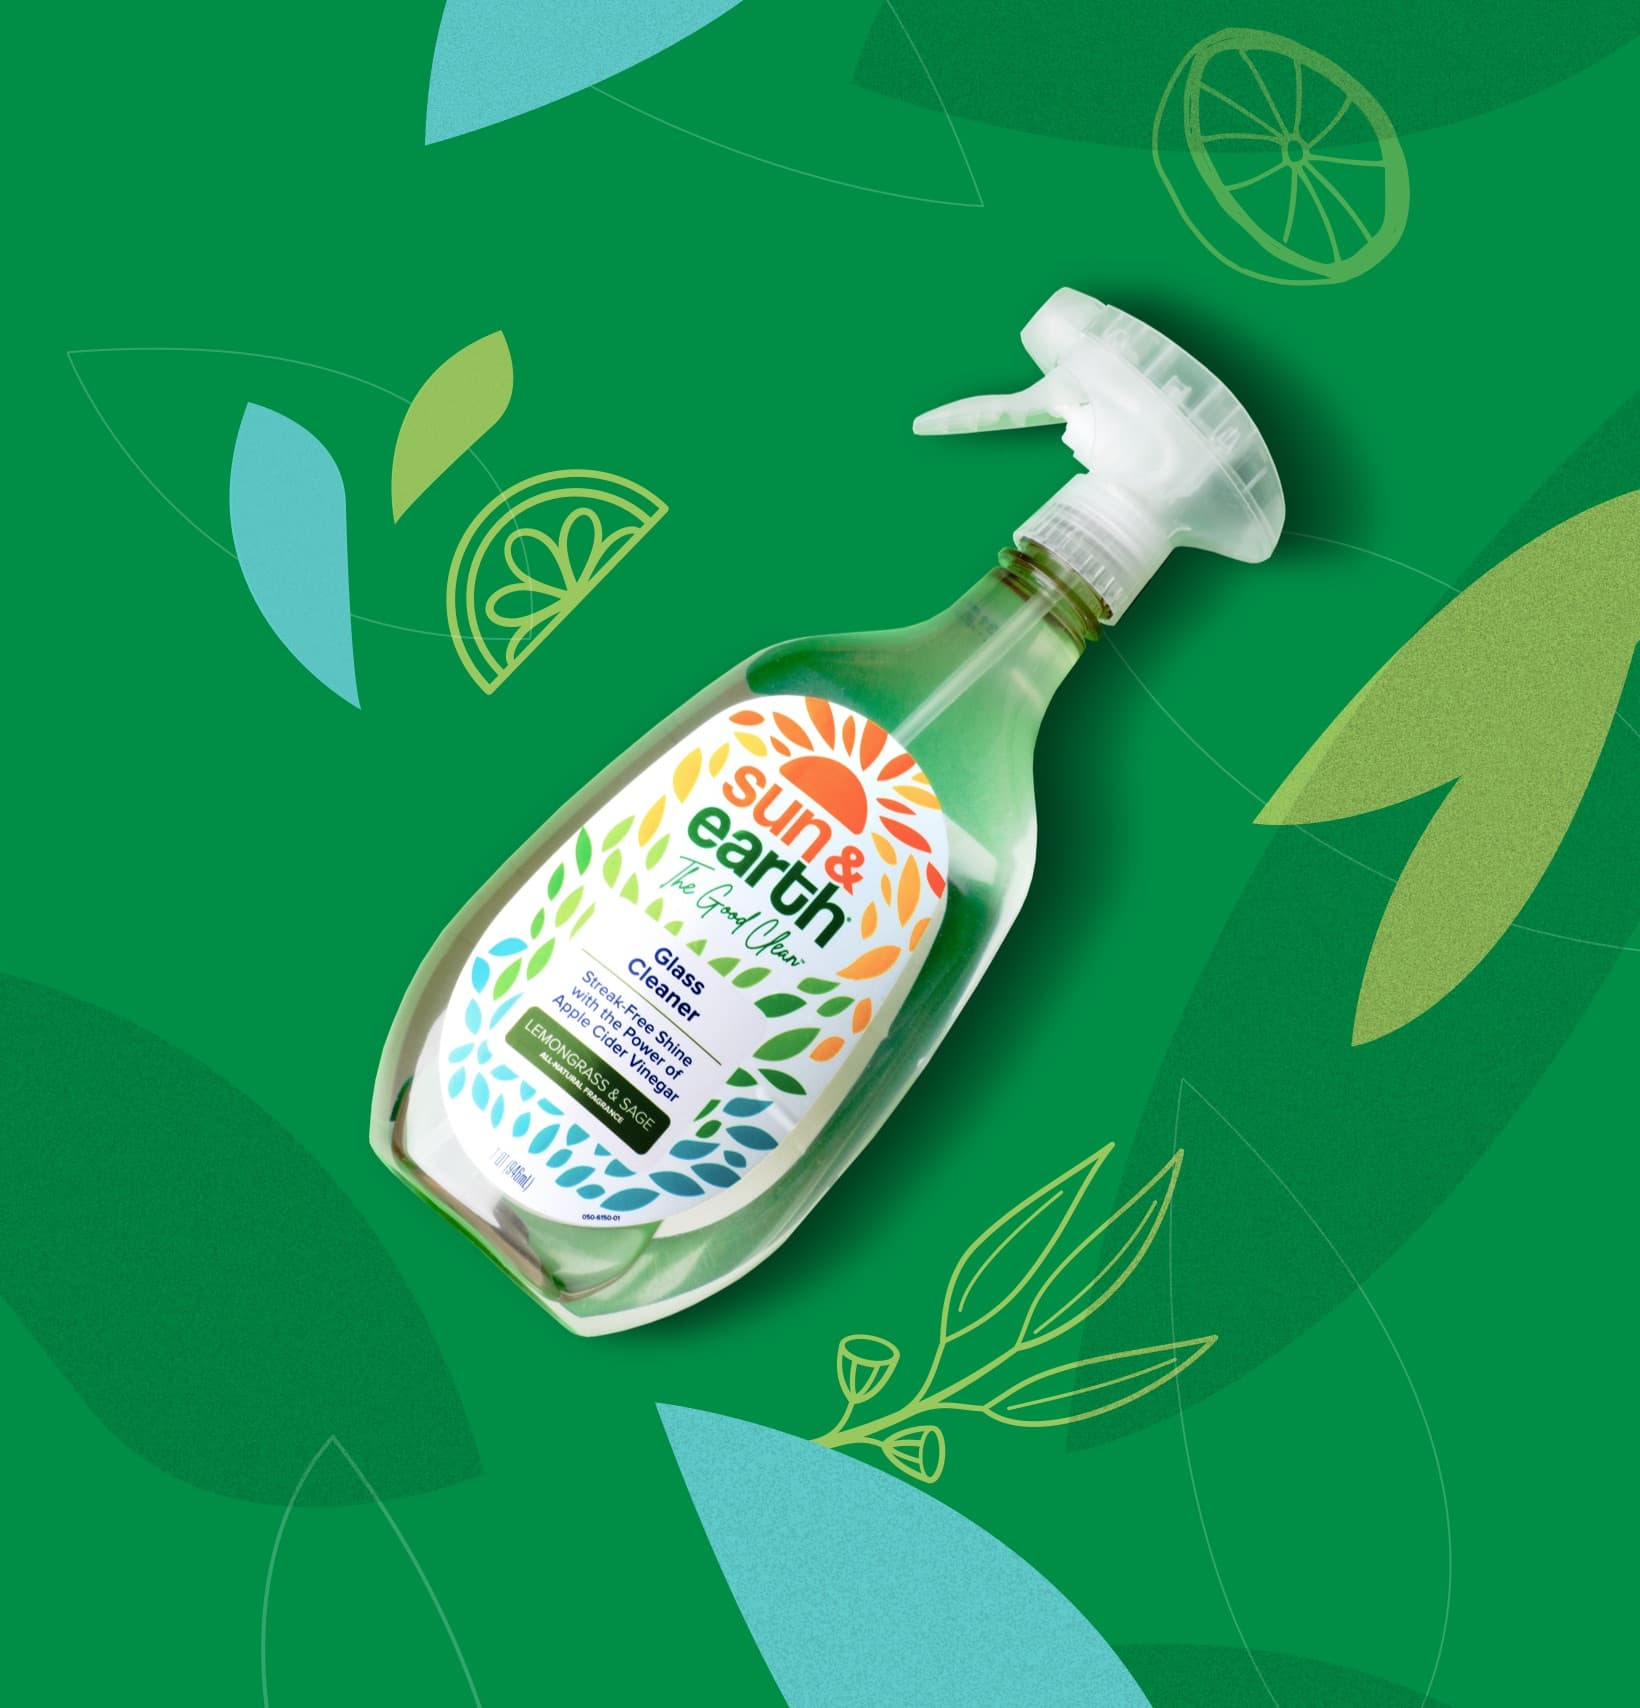 Sun & Earth plant-based product on green background